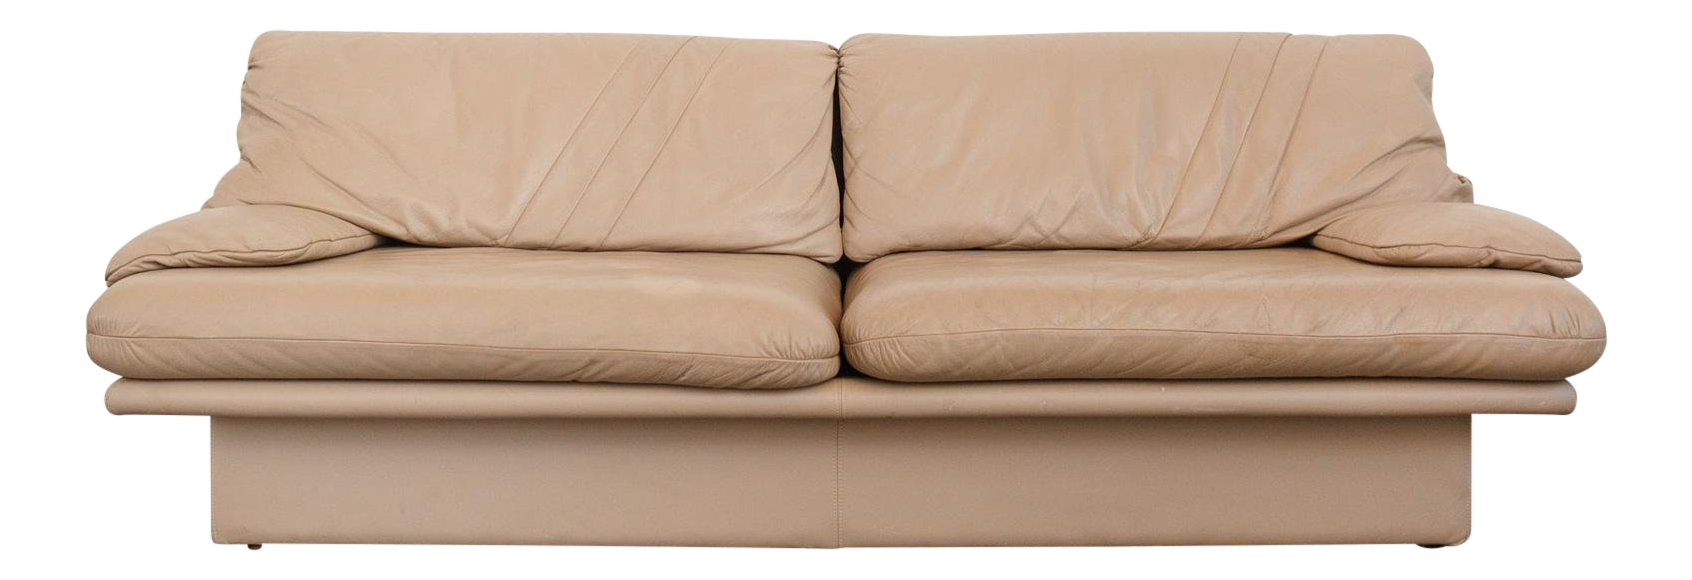 Italian Modern Camel Leather Sofa